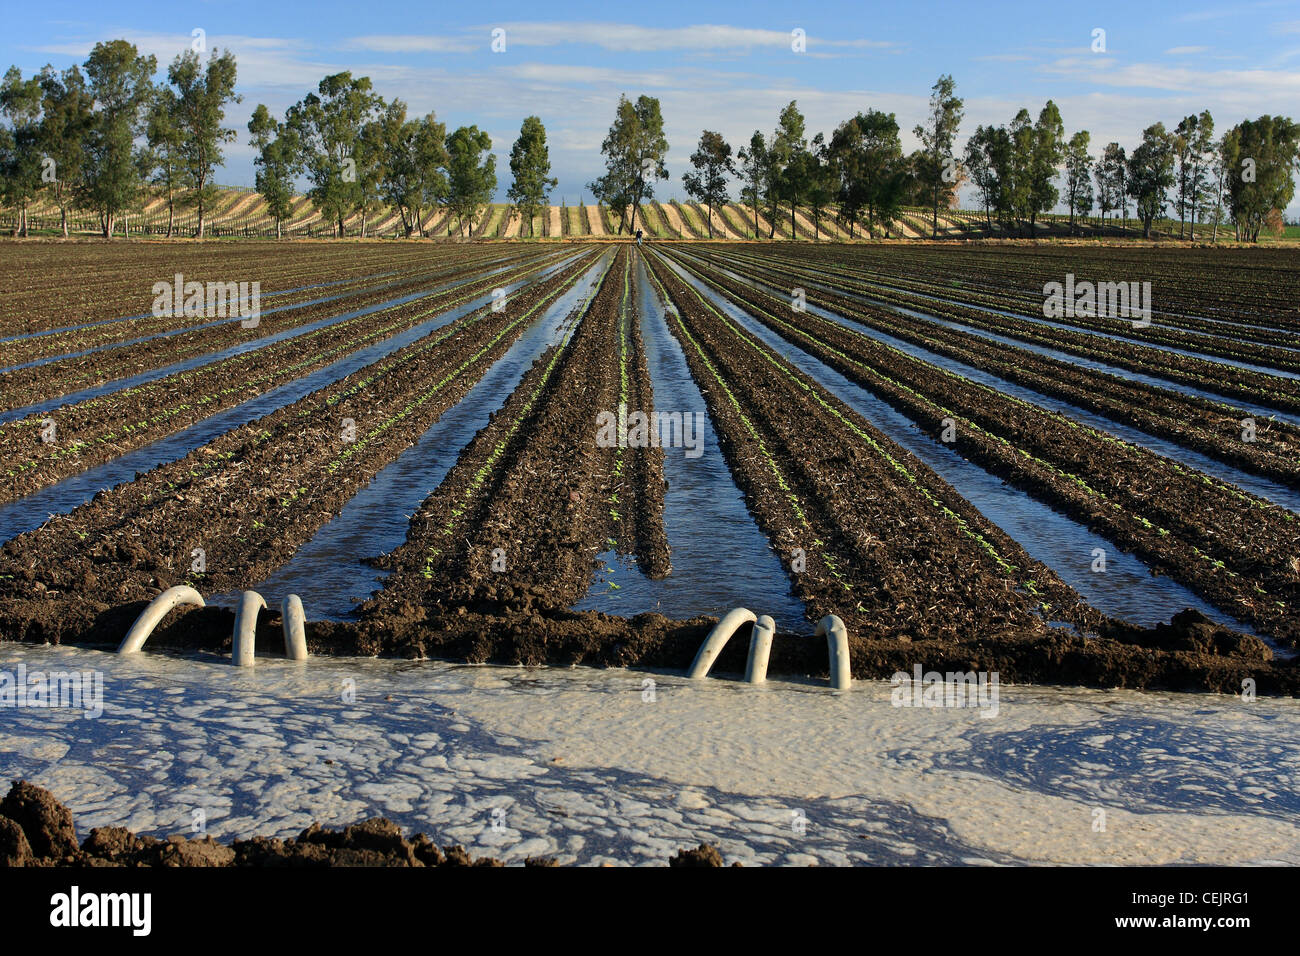 Field of seedling sunflowers being furrow irrigated. Siphon tubes transfer water from the irrigation ditch to the - Stock Image